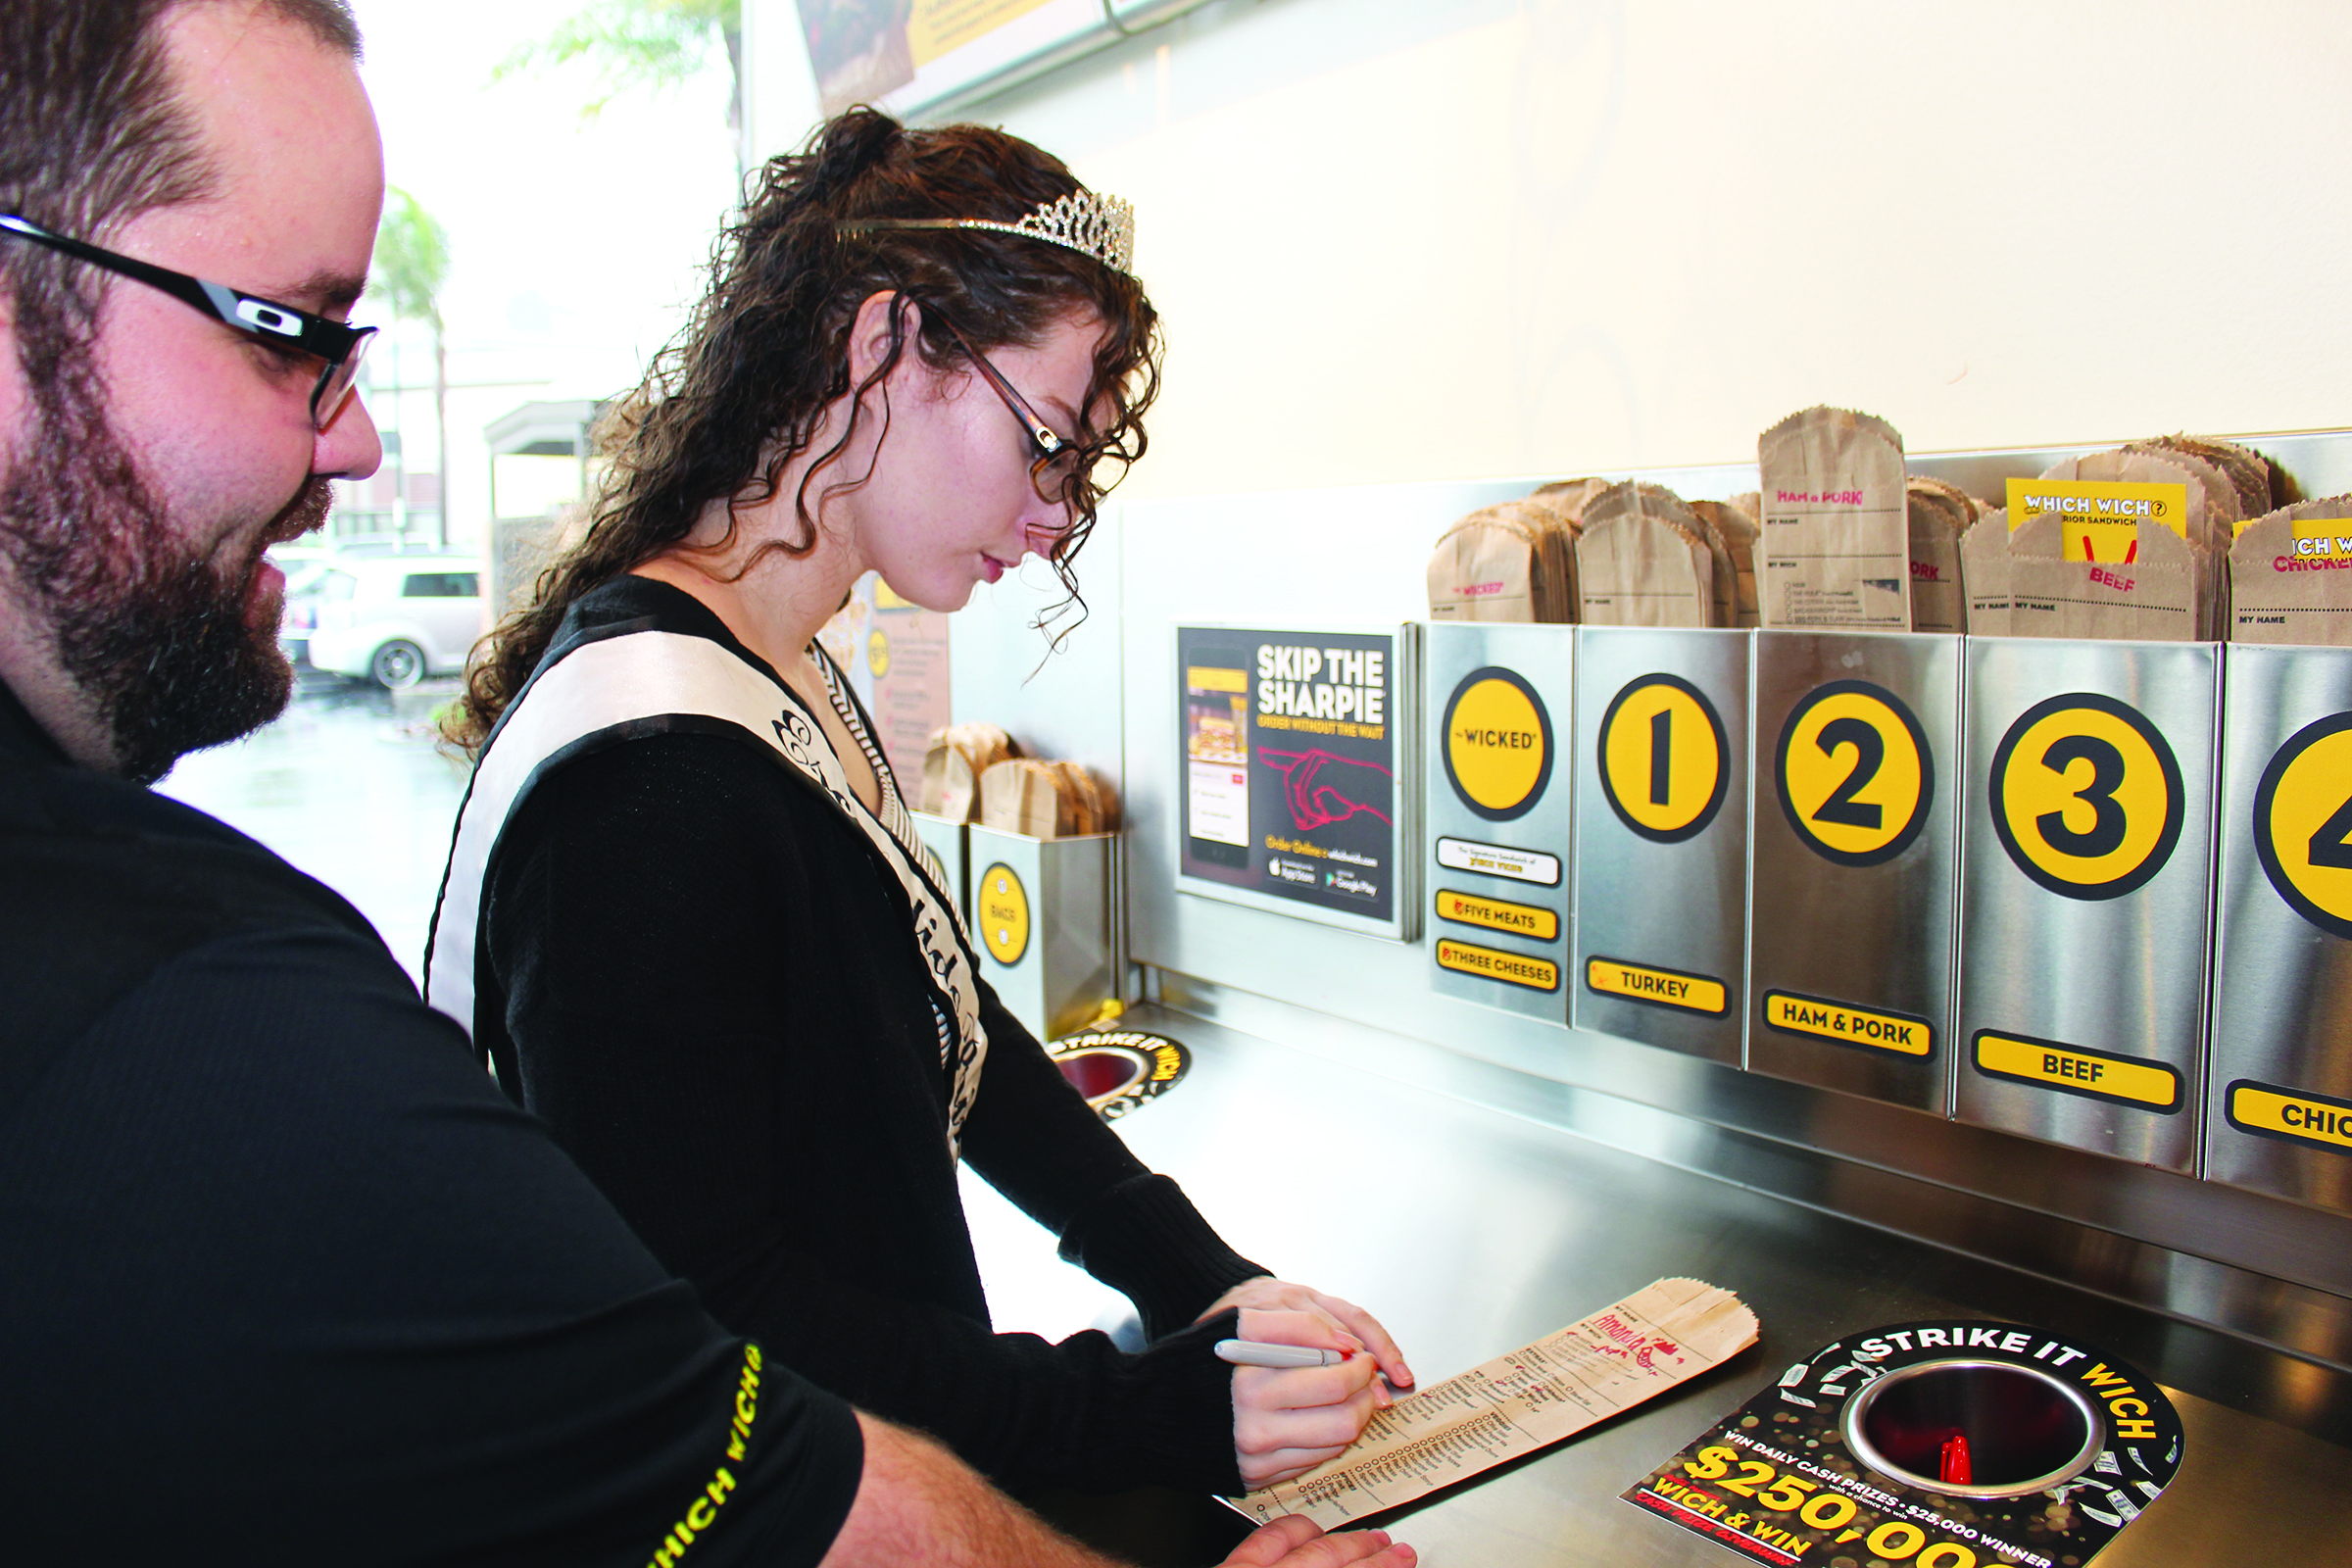 Douglas Jones, head of operations for the Escondido Which Wich, helps Escondido Princess Amanda Cowie fill out her order bag.